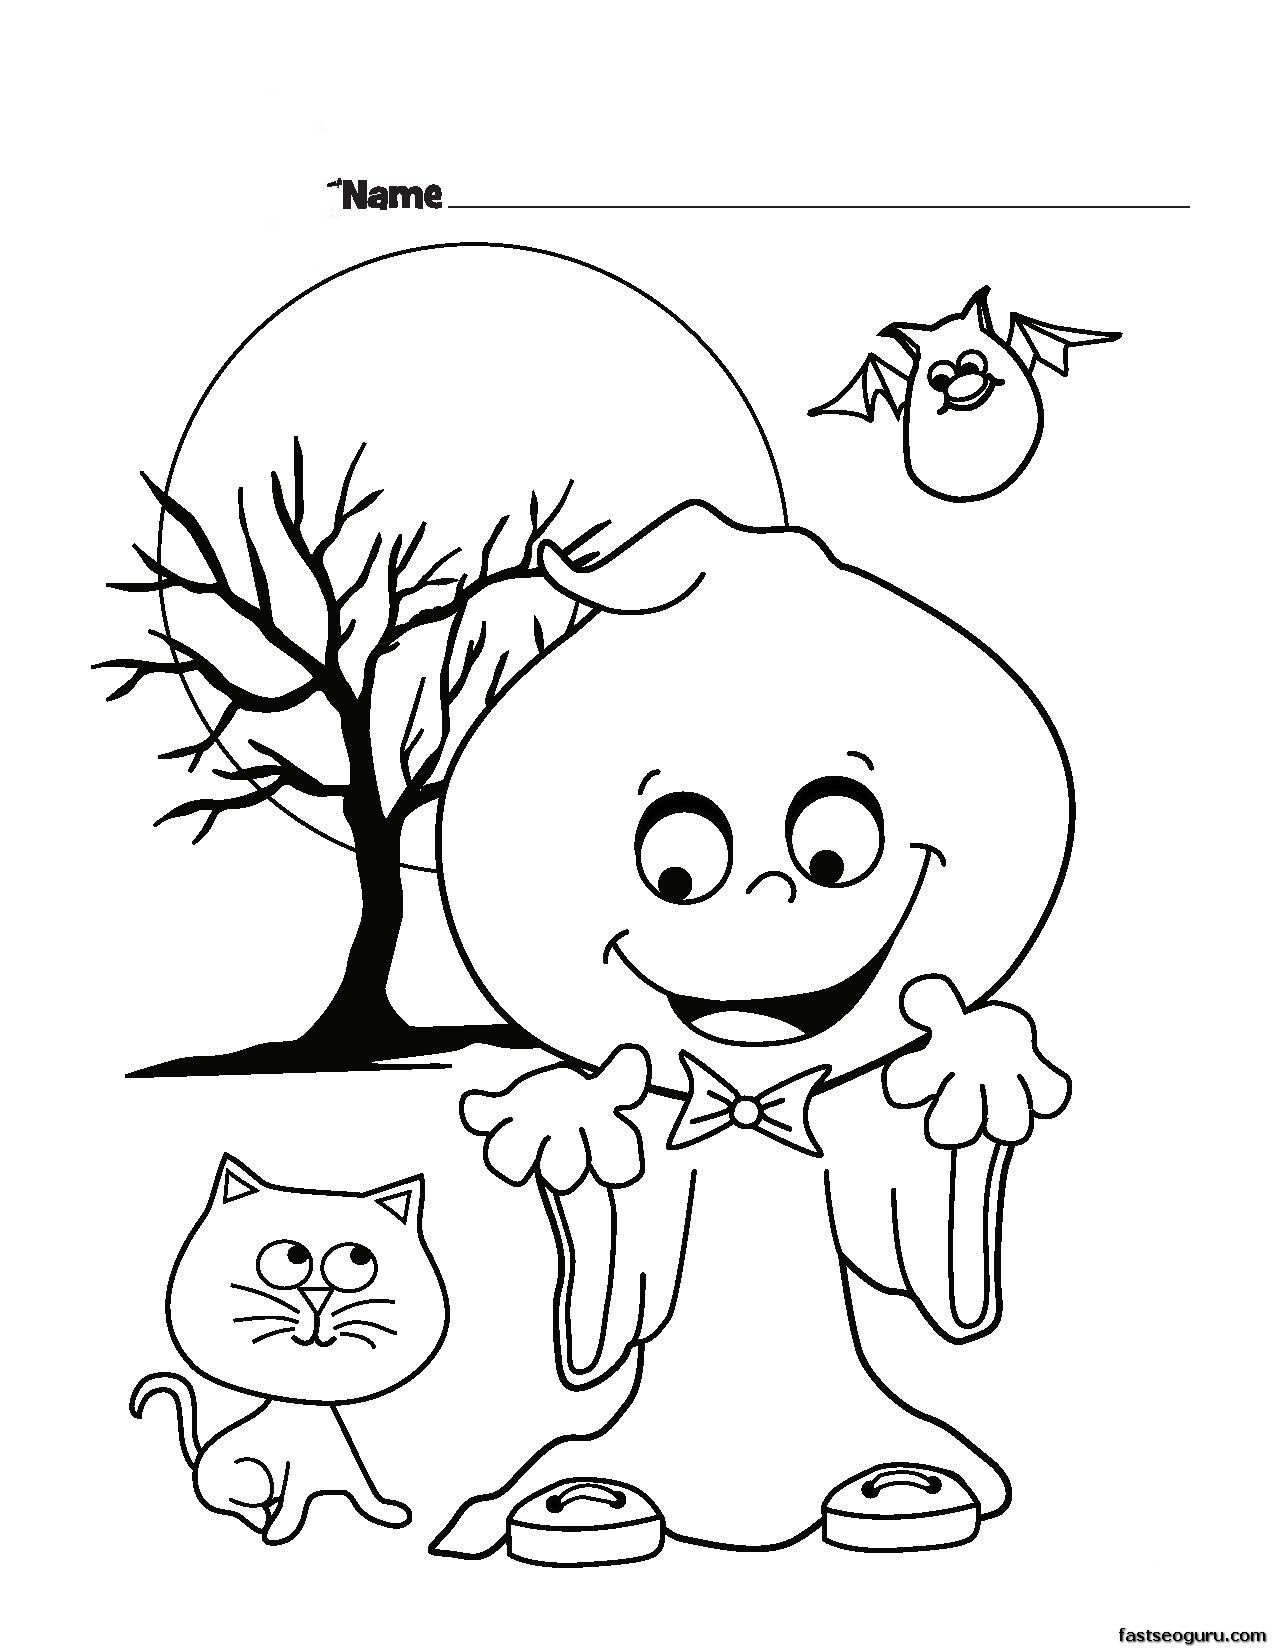 1275x1650 Halloween Funny Ghost Coloring Page For Kids New Ghost Gas Joke